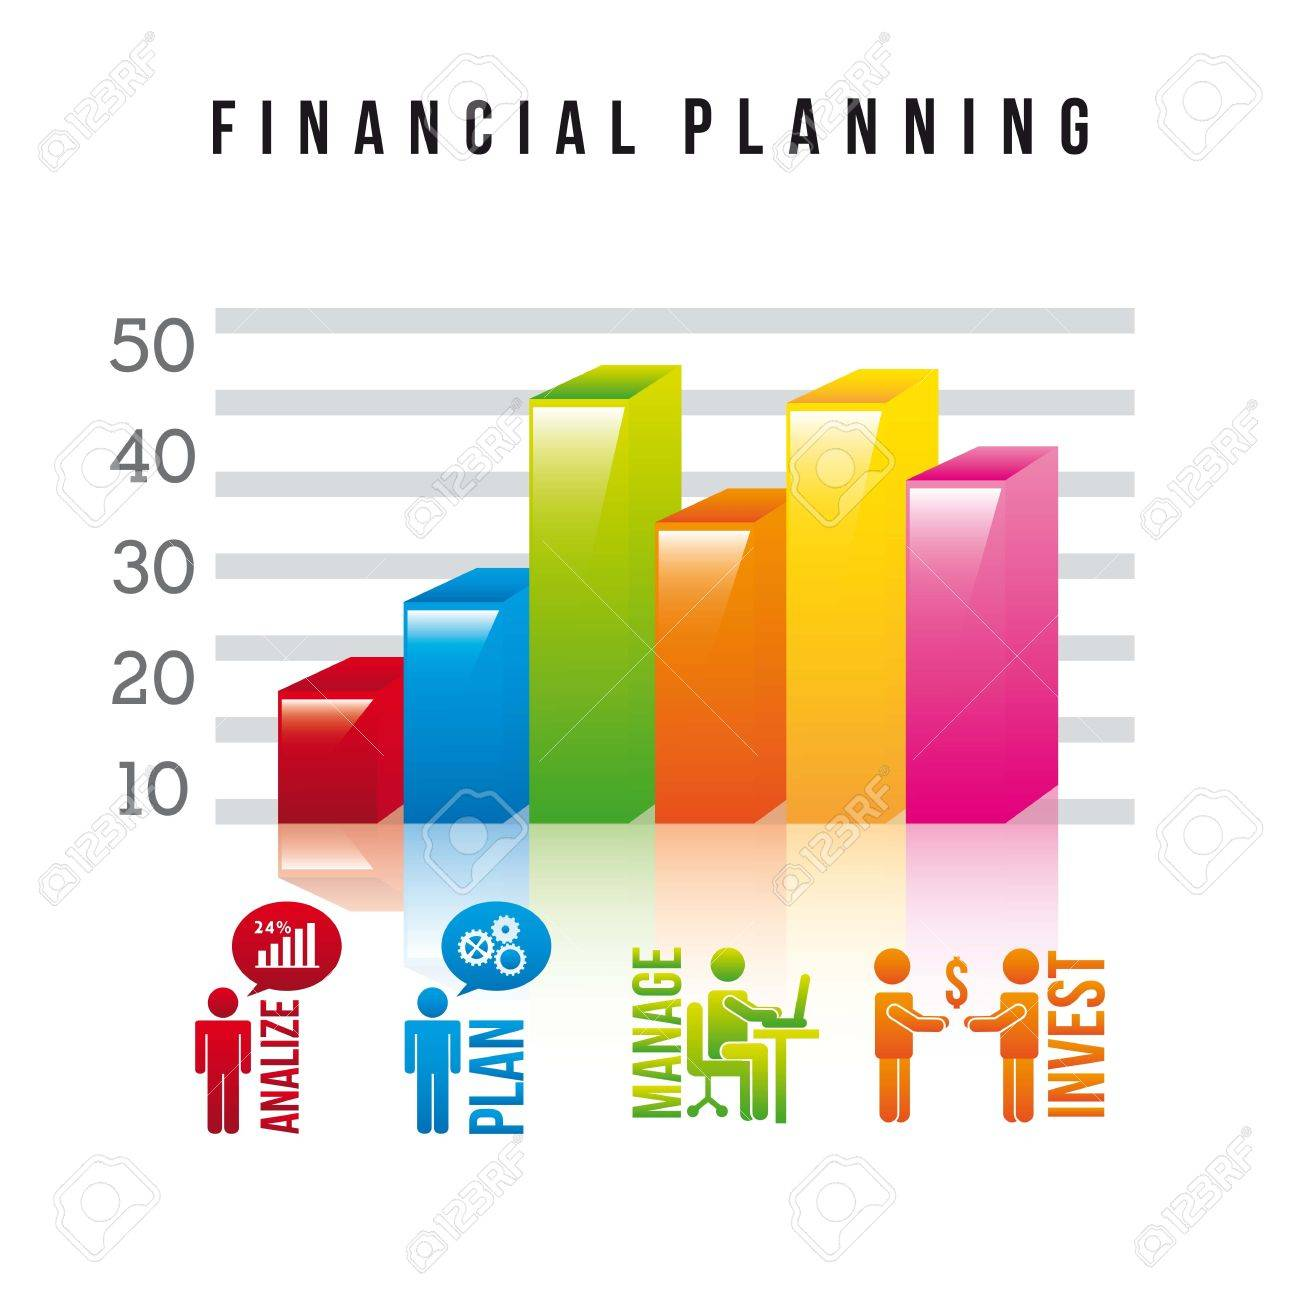 financial planning illustration over white background. vector.